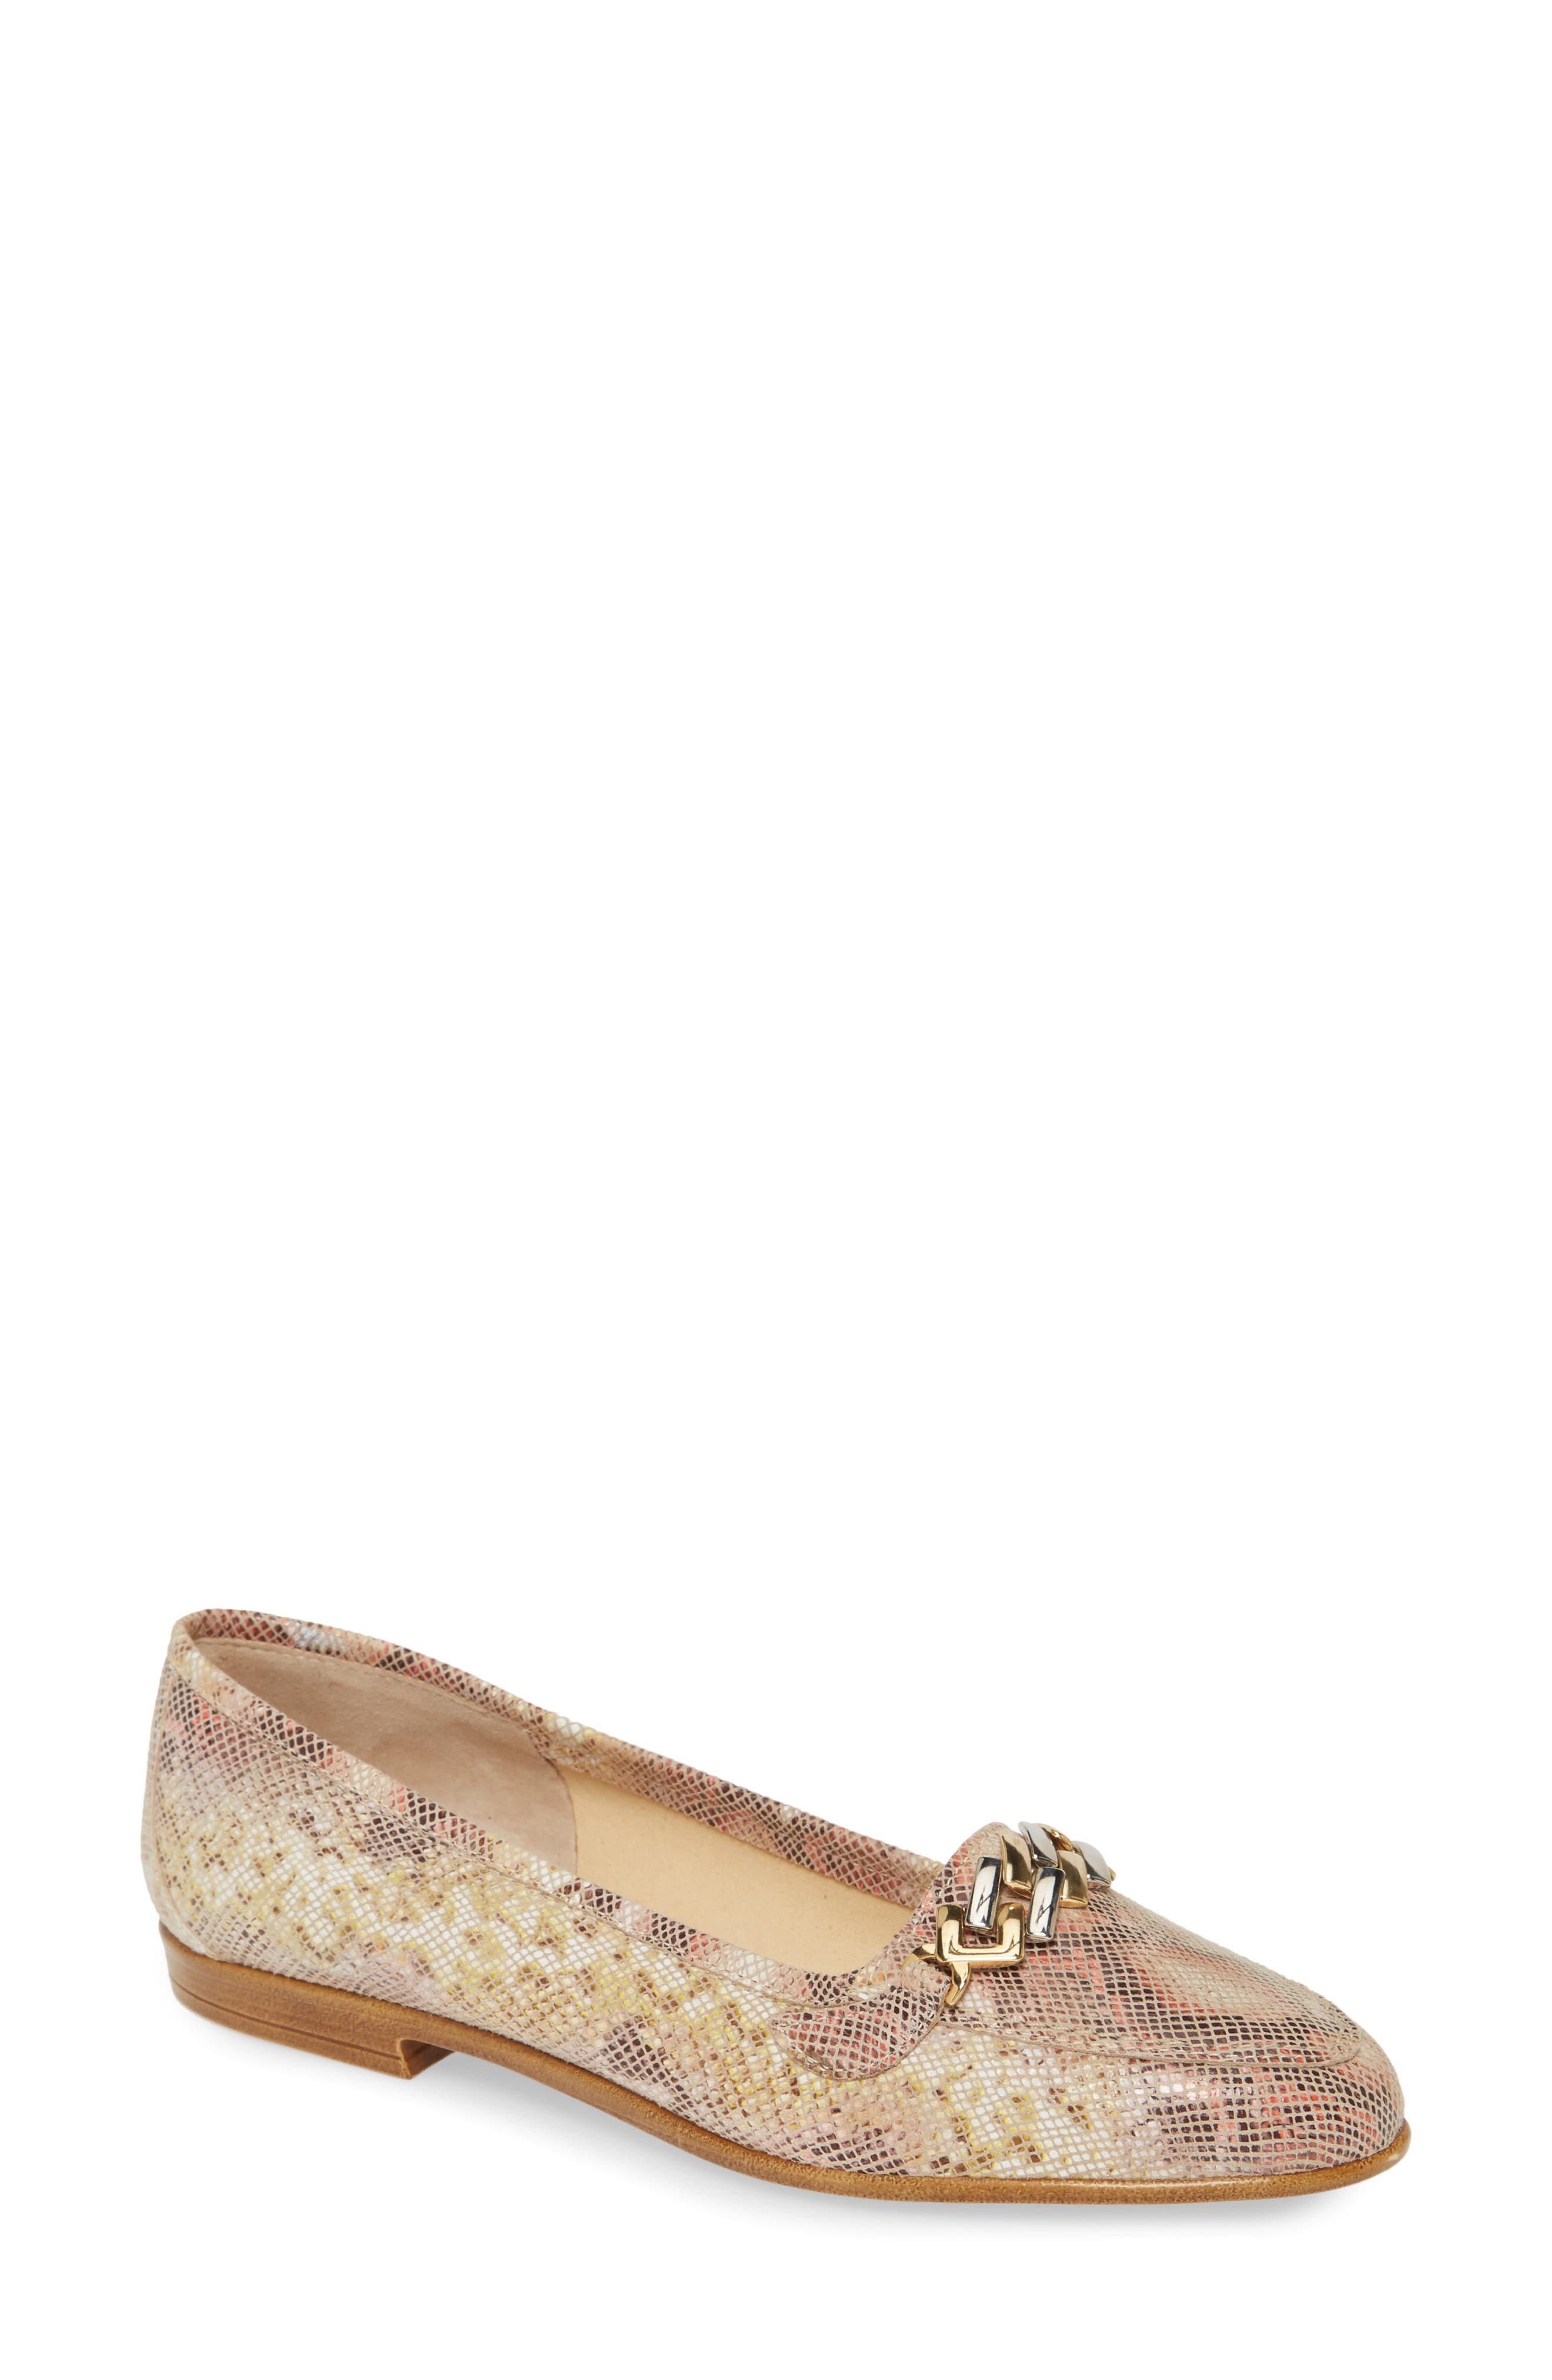 Image of Amalfi by Rangoni Oste Ornamented Classic Loafer